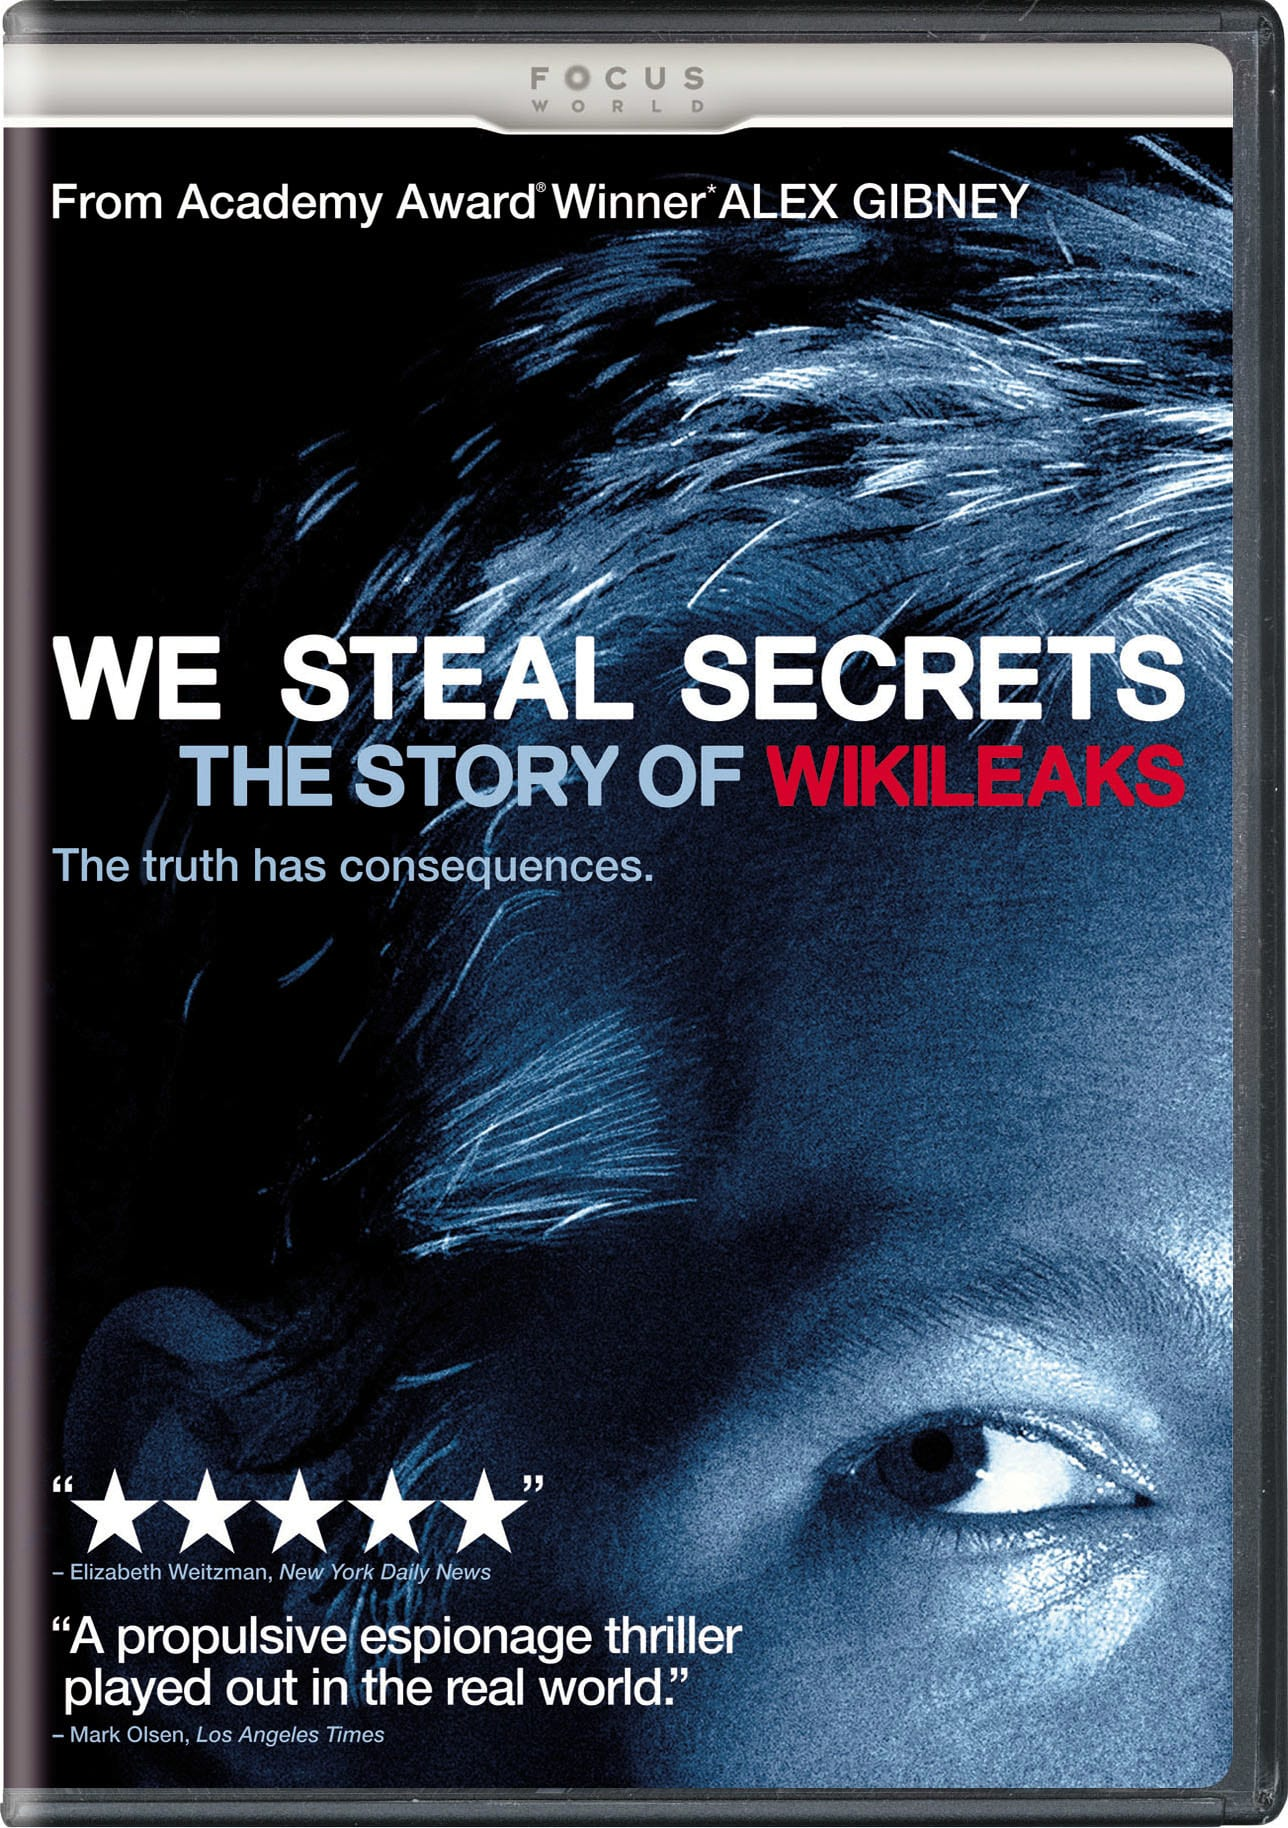 We Steal Secrets - The Story of WikiLeaks [DVD]